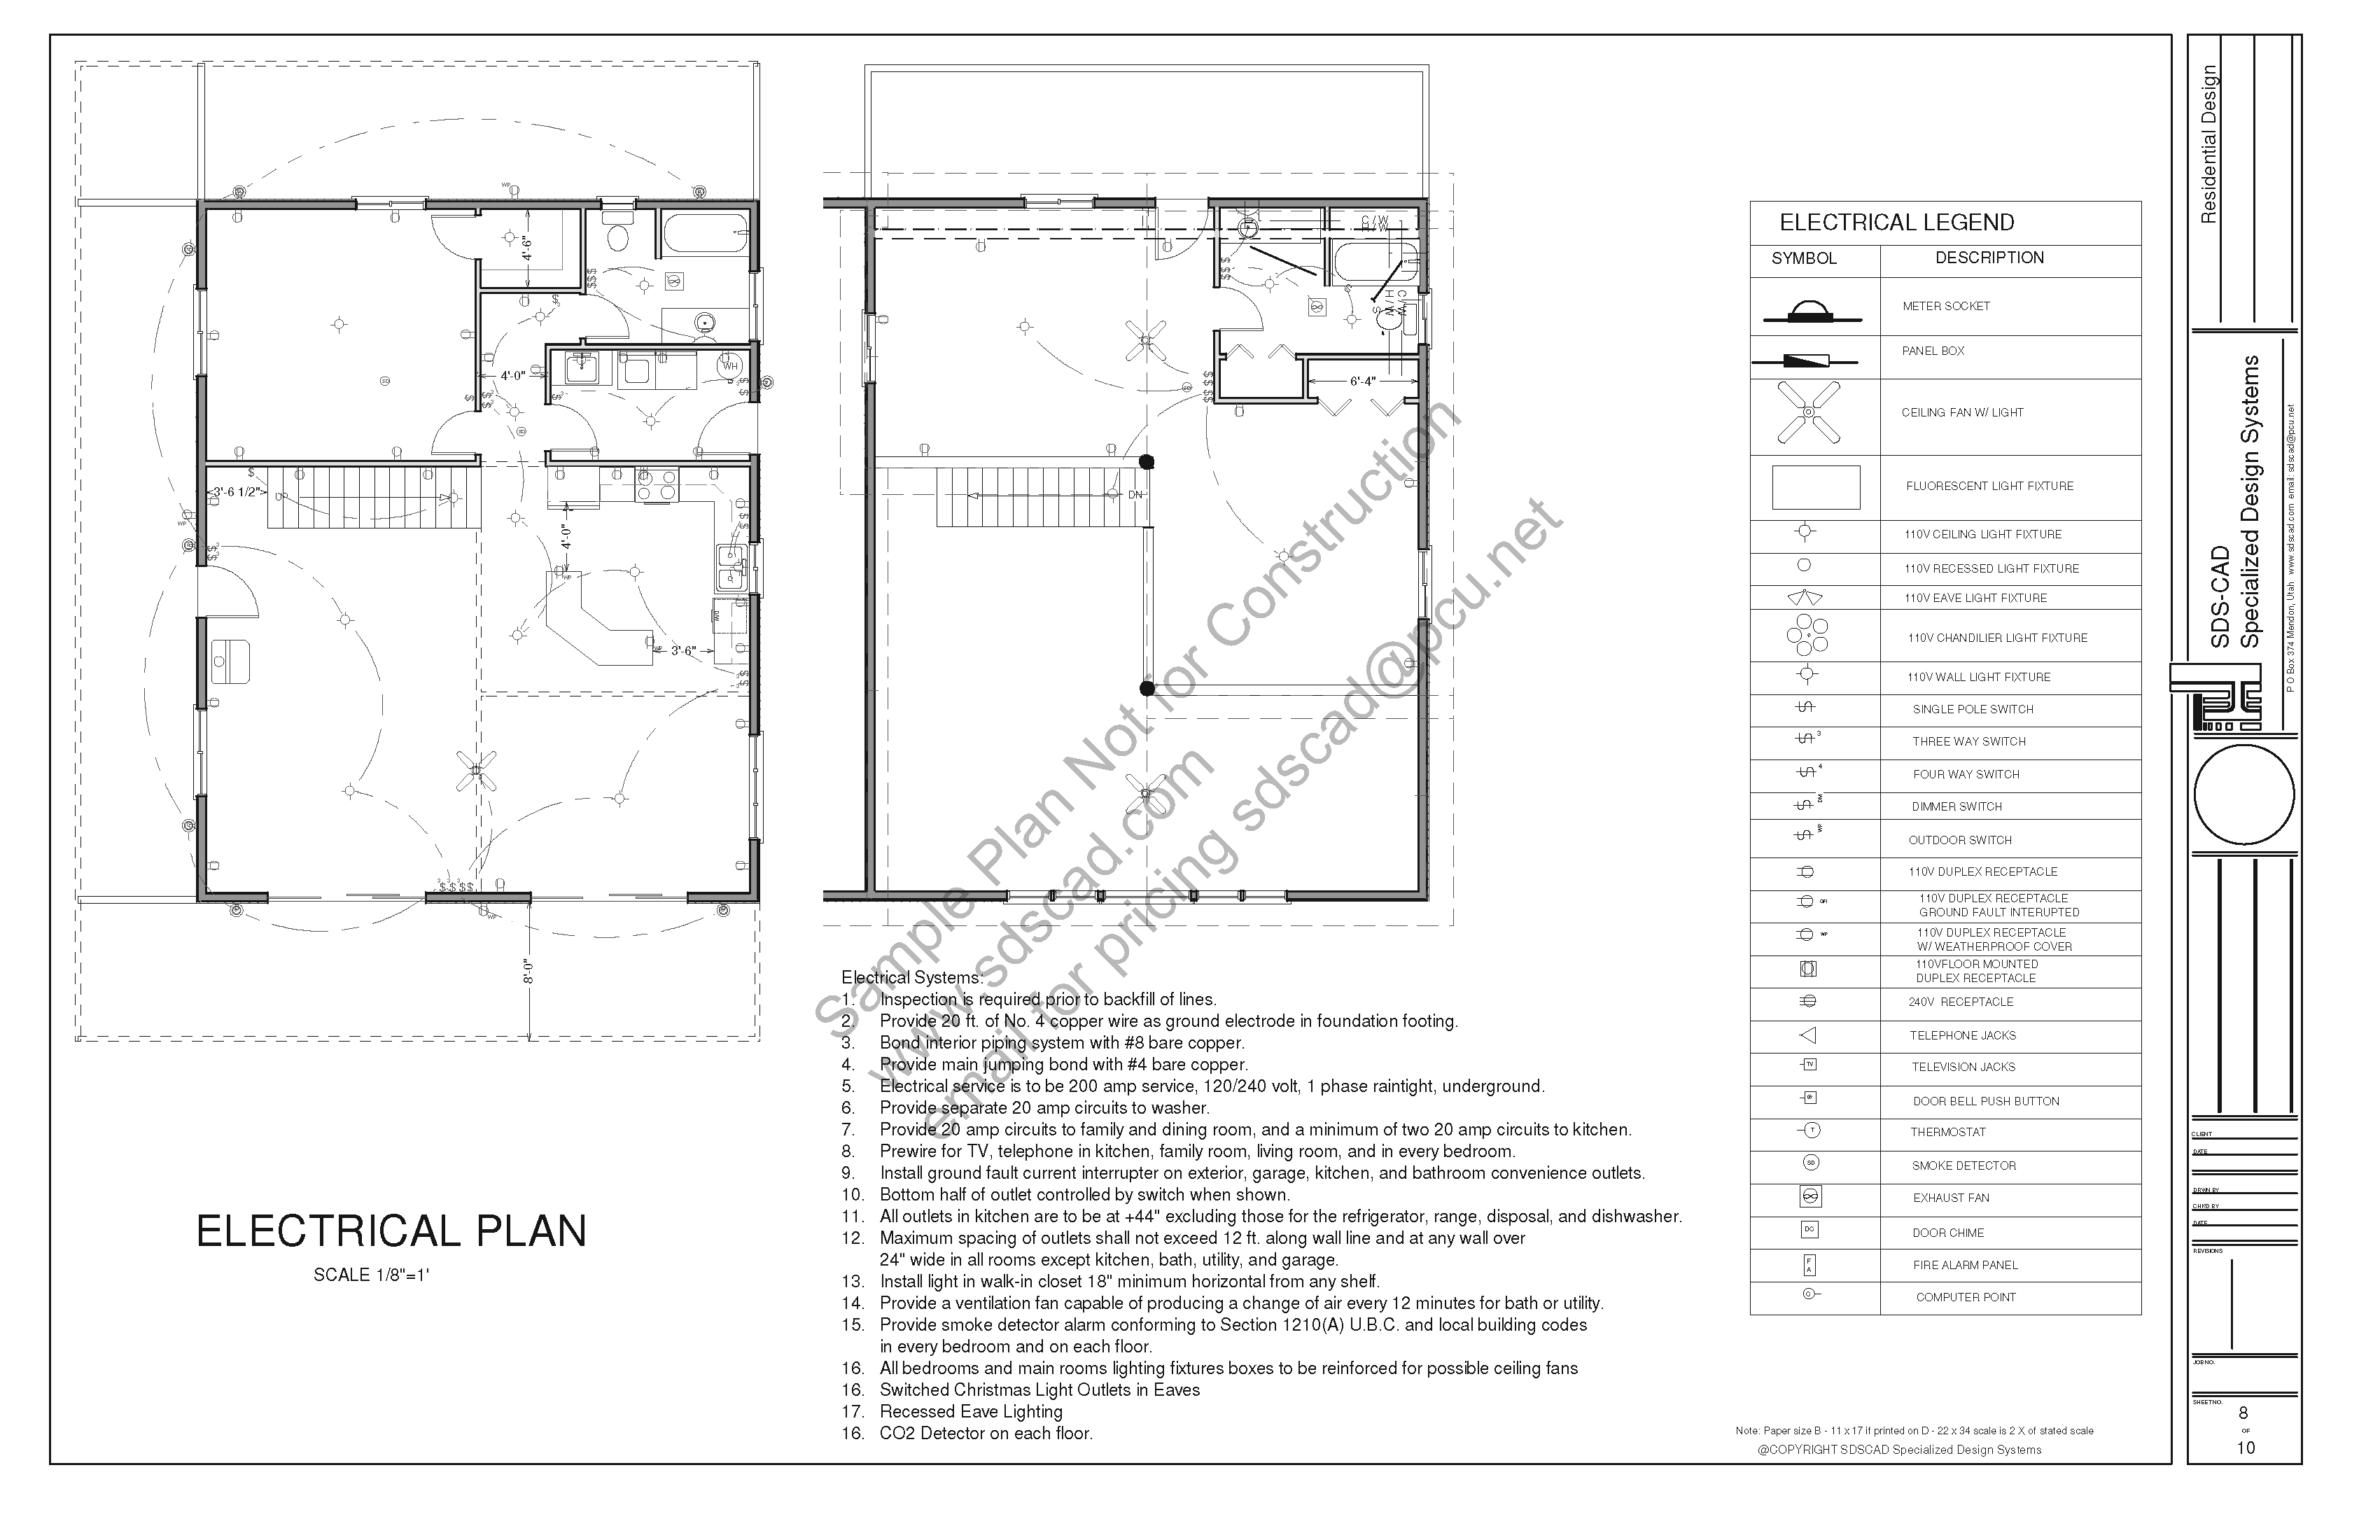 600 sq ft cabin plans with loft 500 sq ft cabin 600 sq ft for 600 sq ft house plans with loft